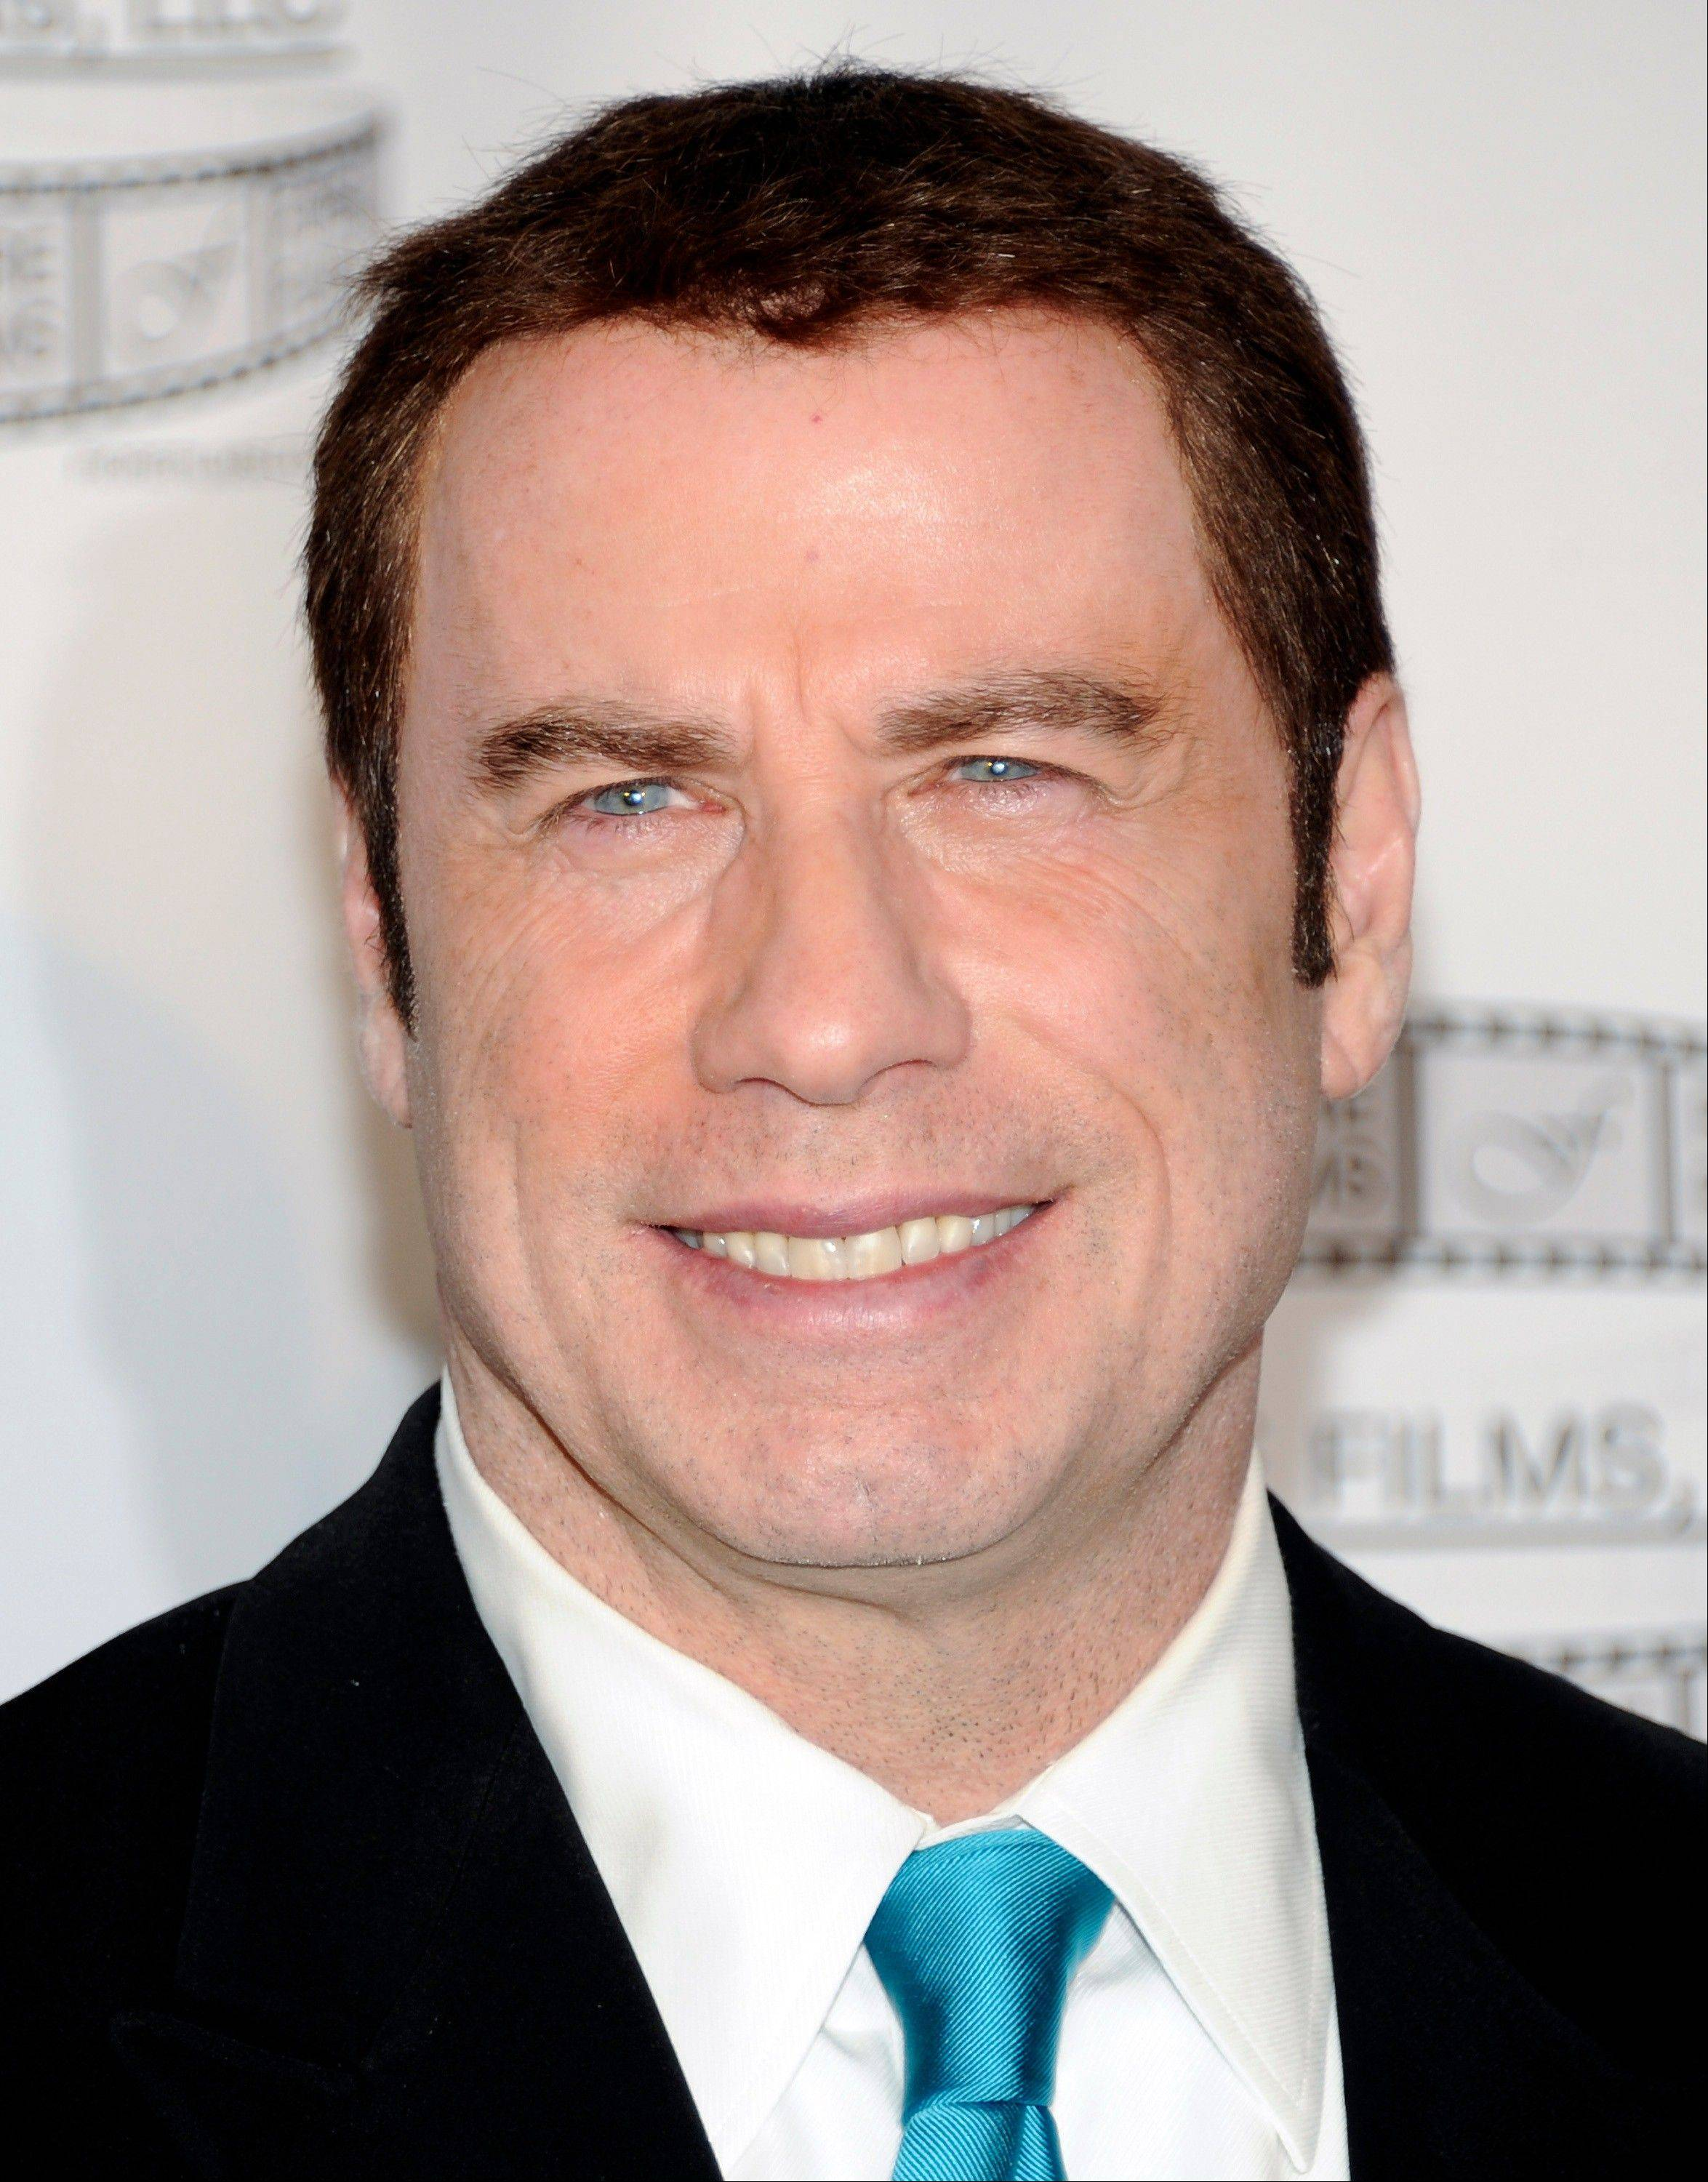 Actor John Travolta is facing another lawsuit alleging inappropriate and unwanted contact this time from a man who worked as a cruise line employee.